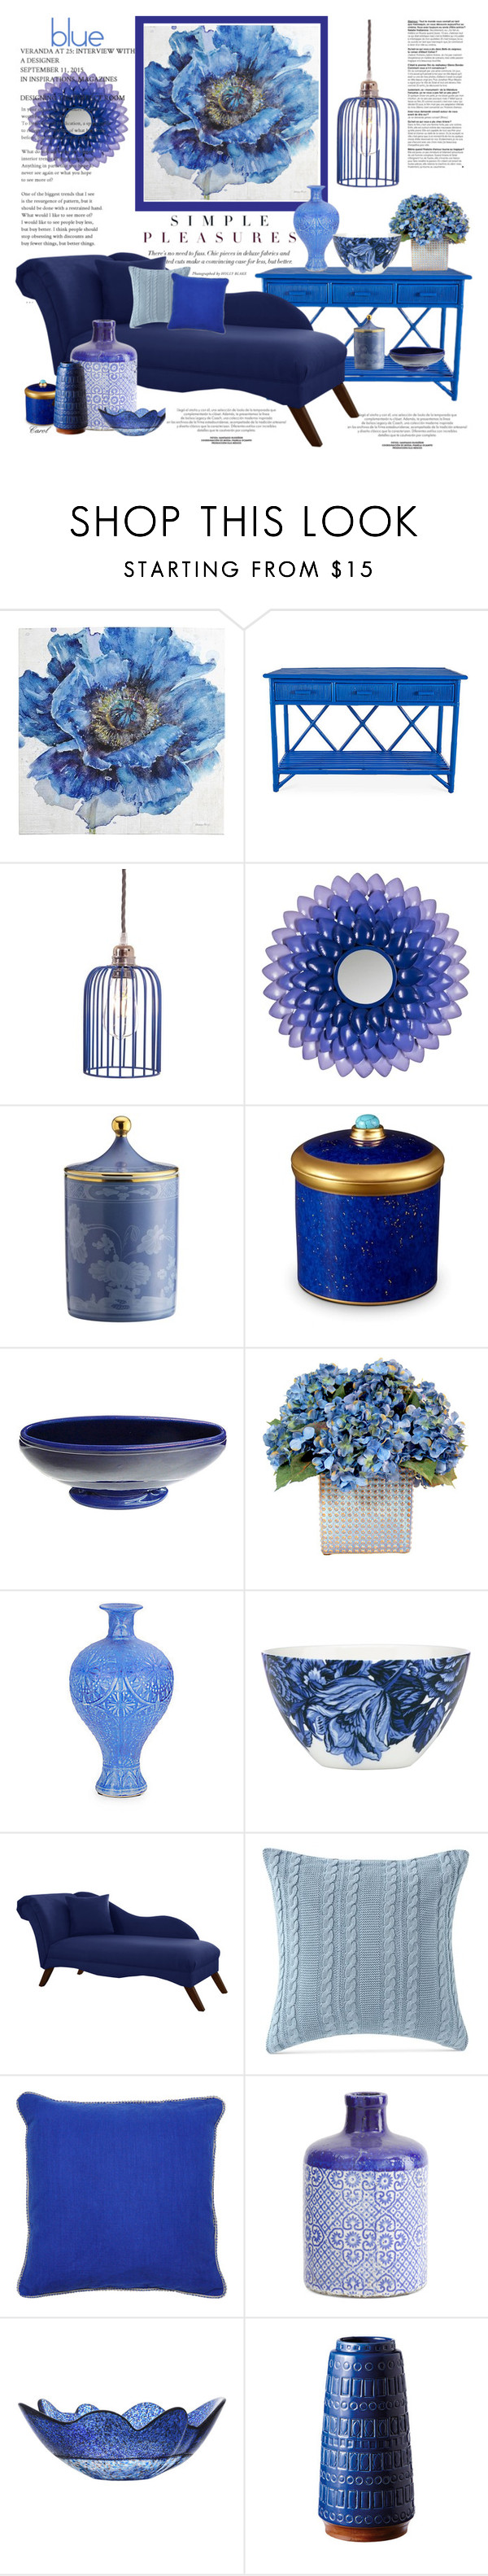 """""""Big, Bold, and Blue"""" by hastypudding ❤ liked on Polyvore featuring interior, interiors, interior design, home, home decor, interior decorating, Pier 1 Imports, David Francis Furniture, Safavieh and Richard Ginori"""